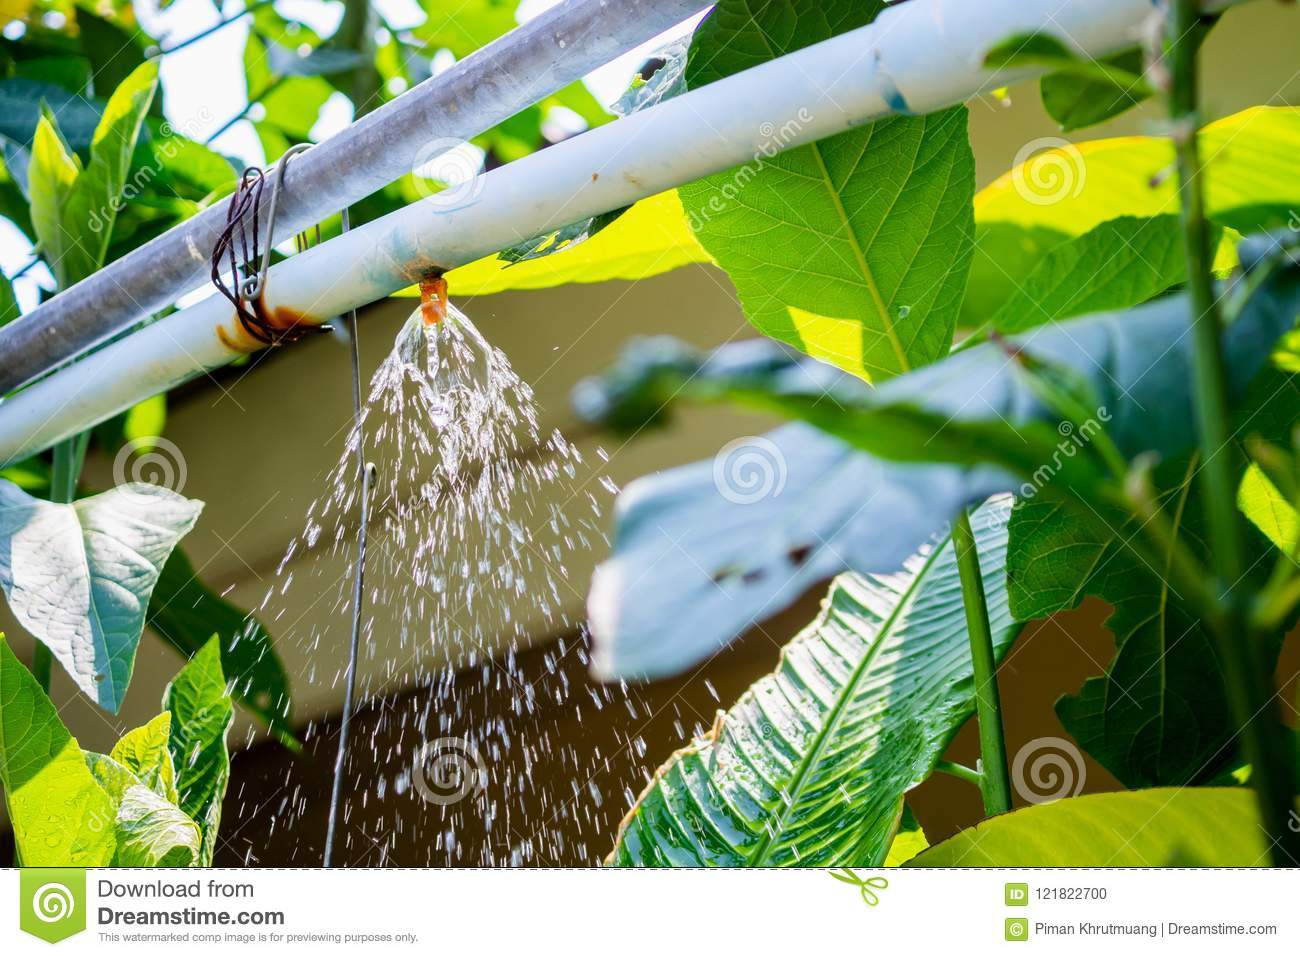 Garden sprinkler water irrigation system